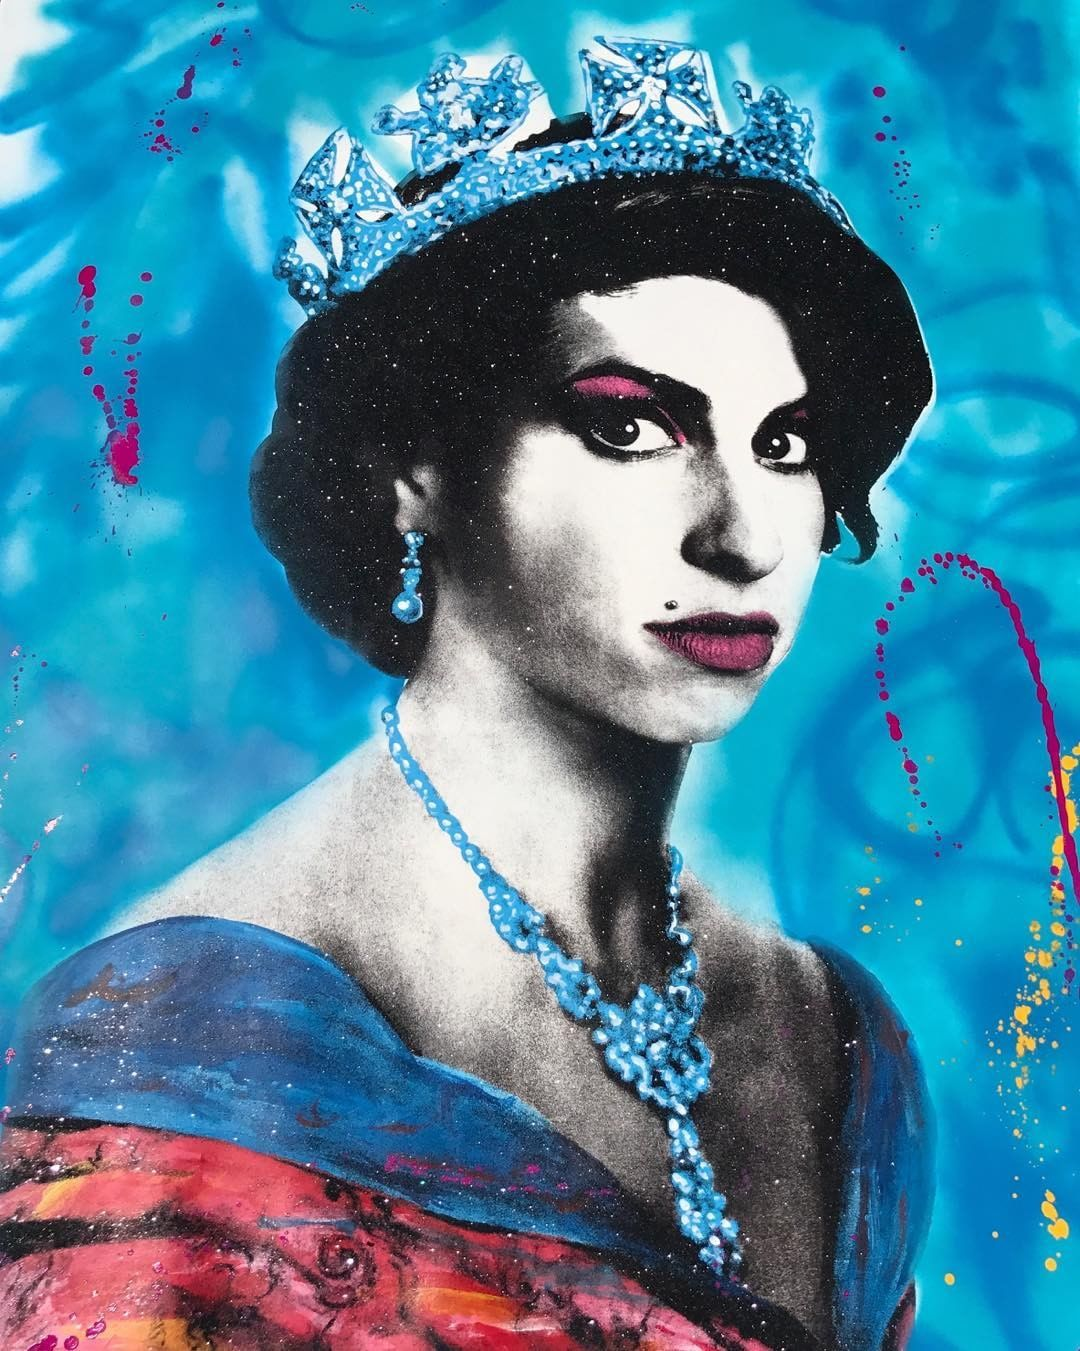 In honor of Amy Winehouse's bday I am releasing original 2017 rebooted Queen Amy Paintings available today!!! #skylergrey #avantgallery #amywinehouse